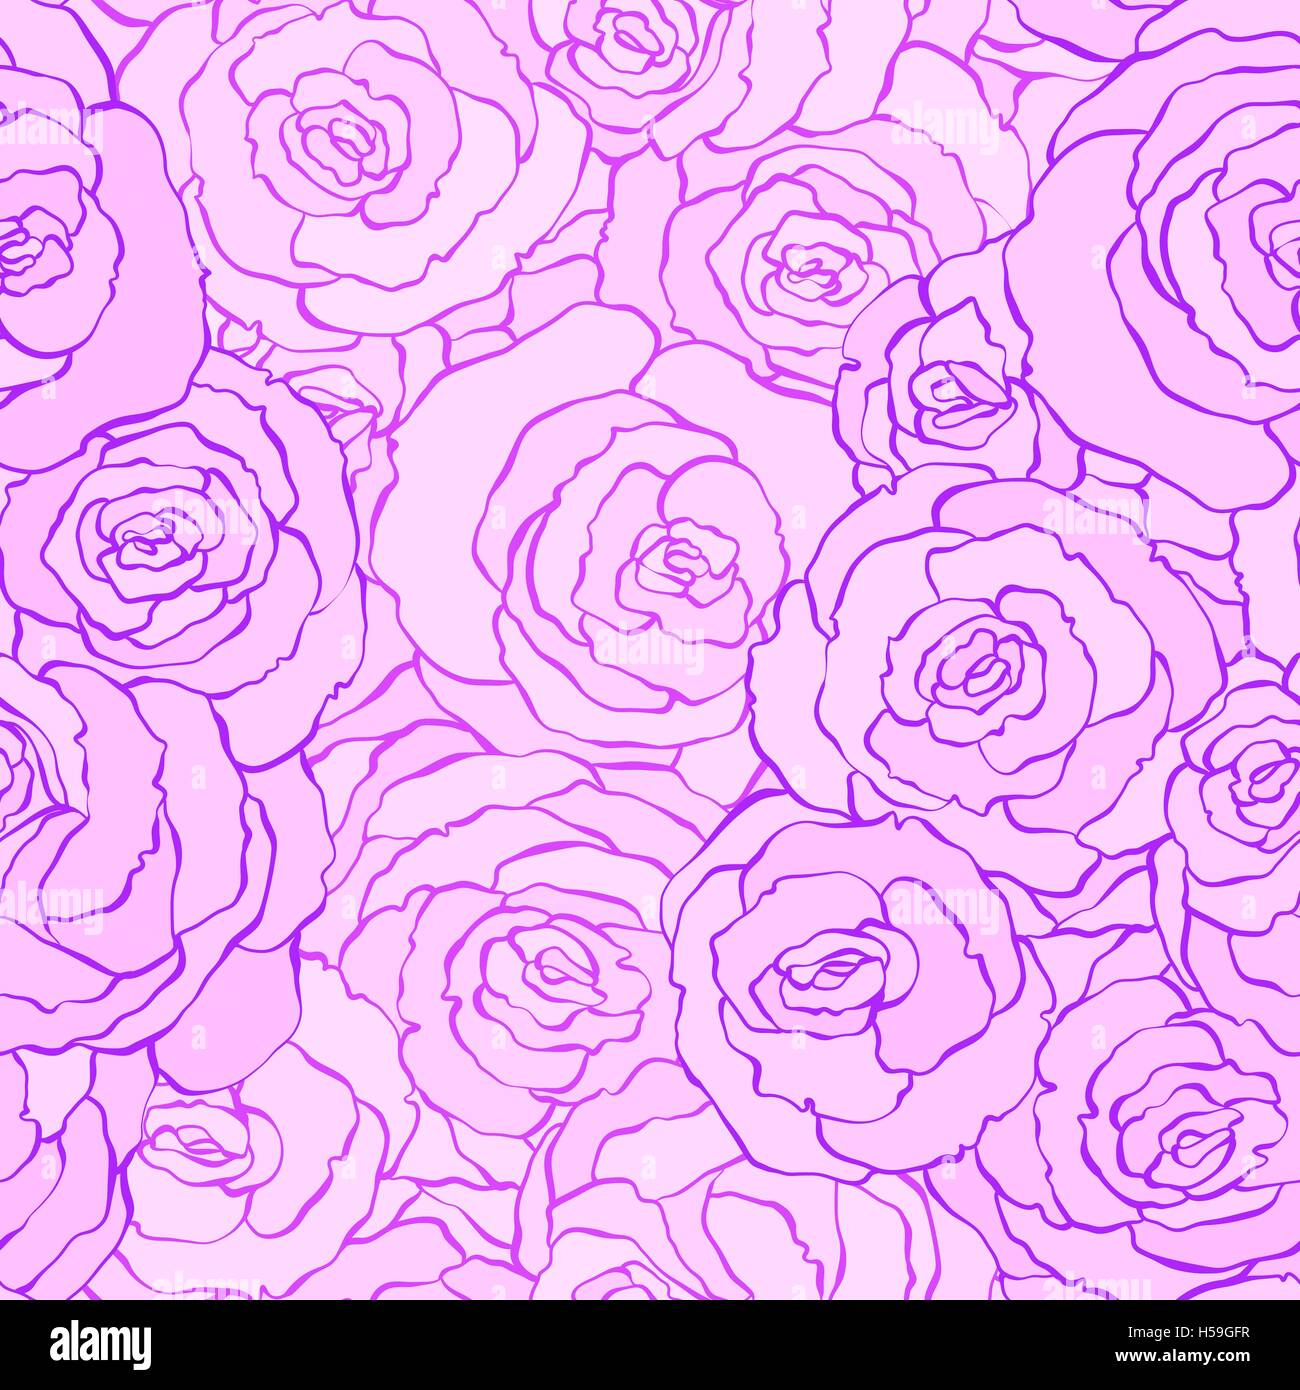 Seamless Vintage Floral Pattern Background With Flowers Of Rose